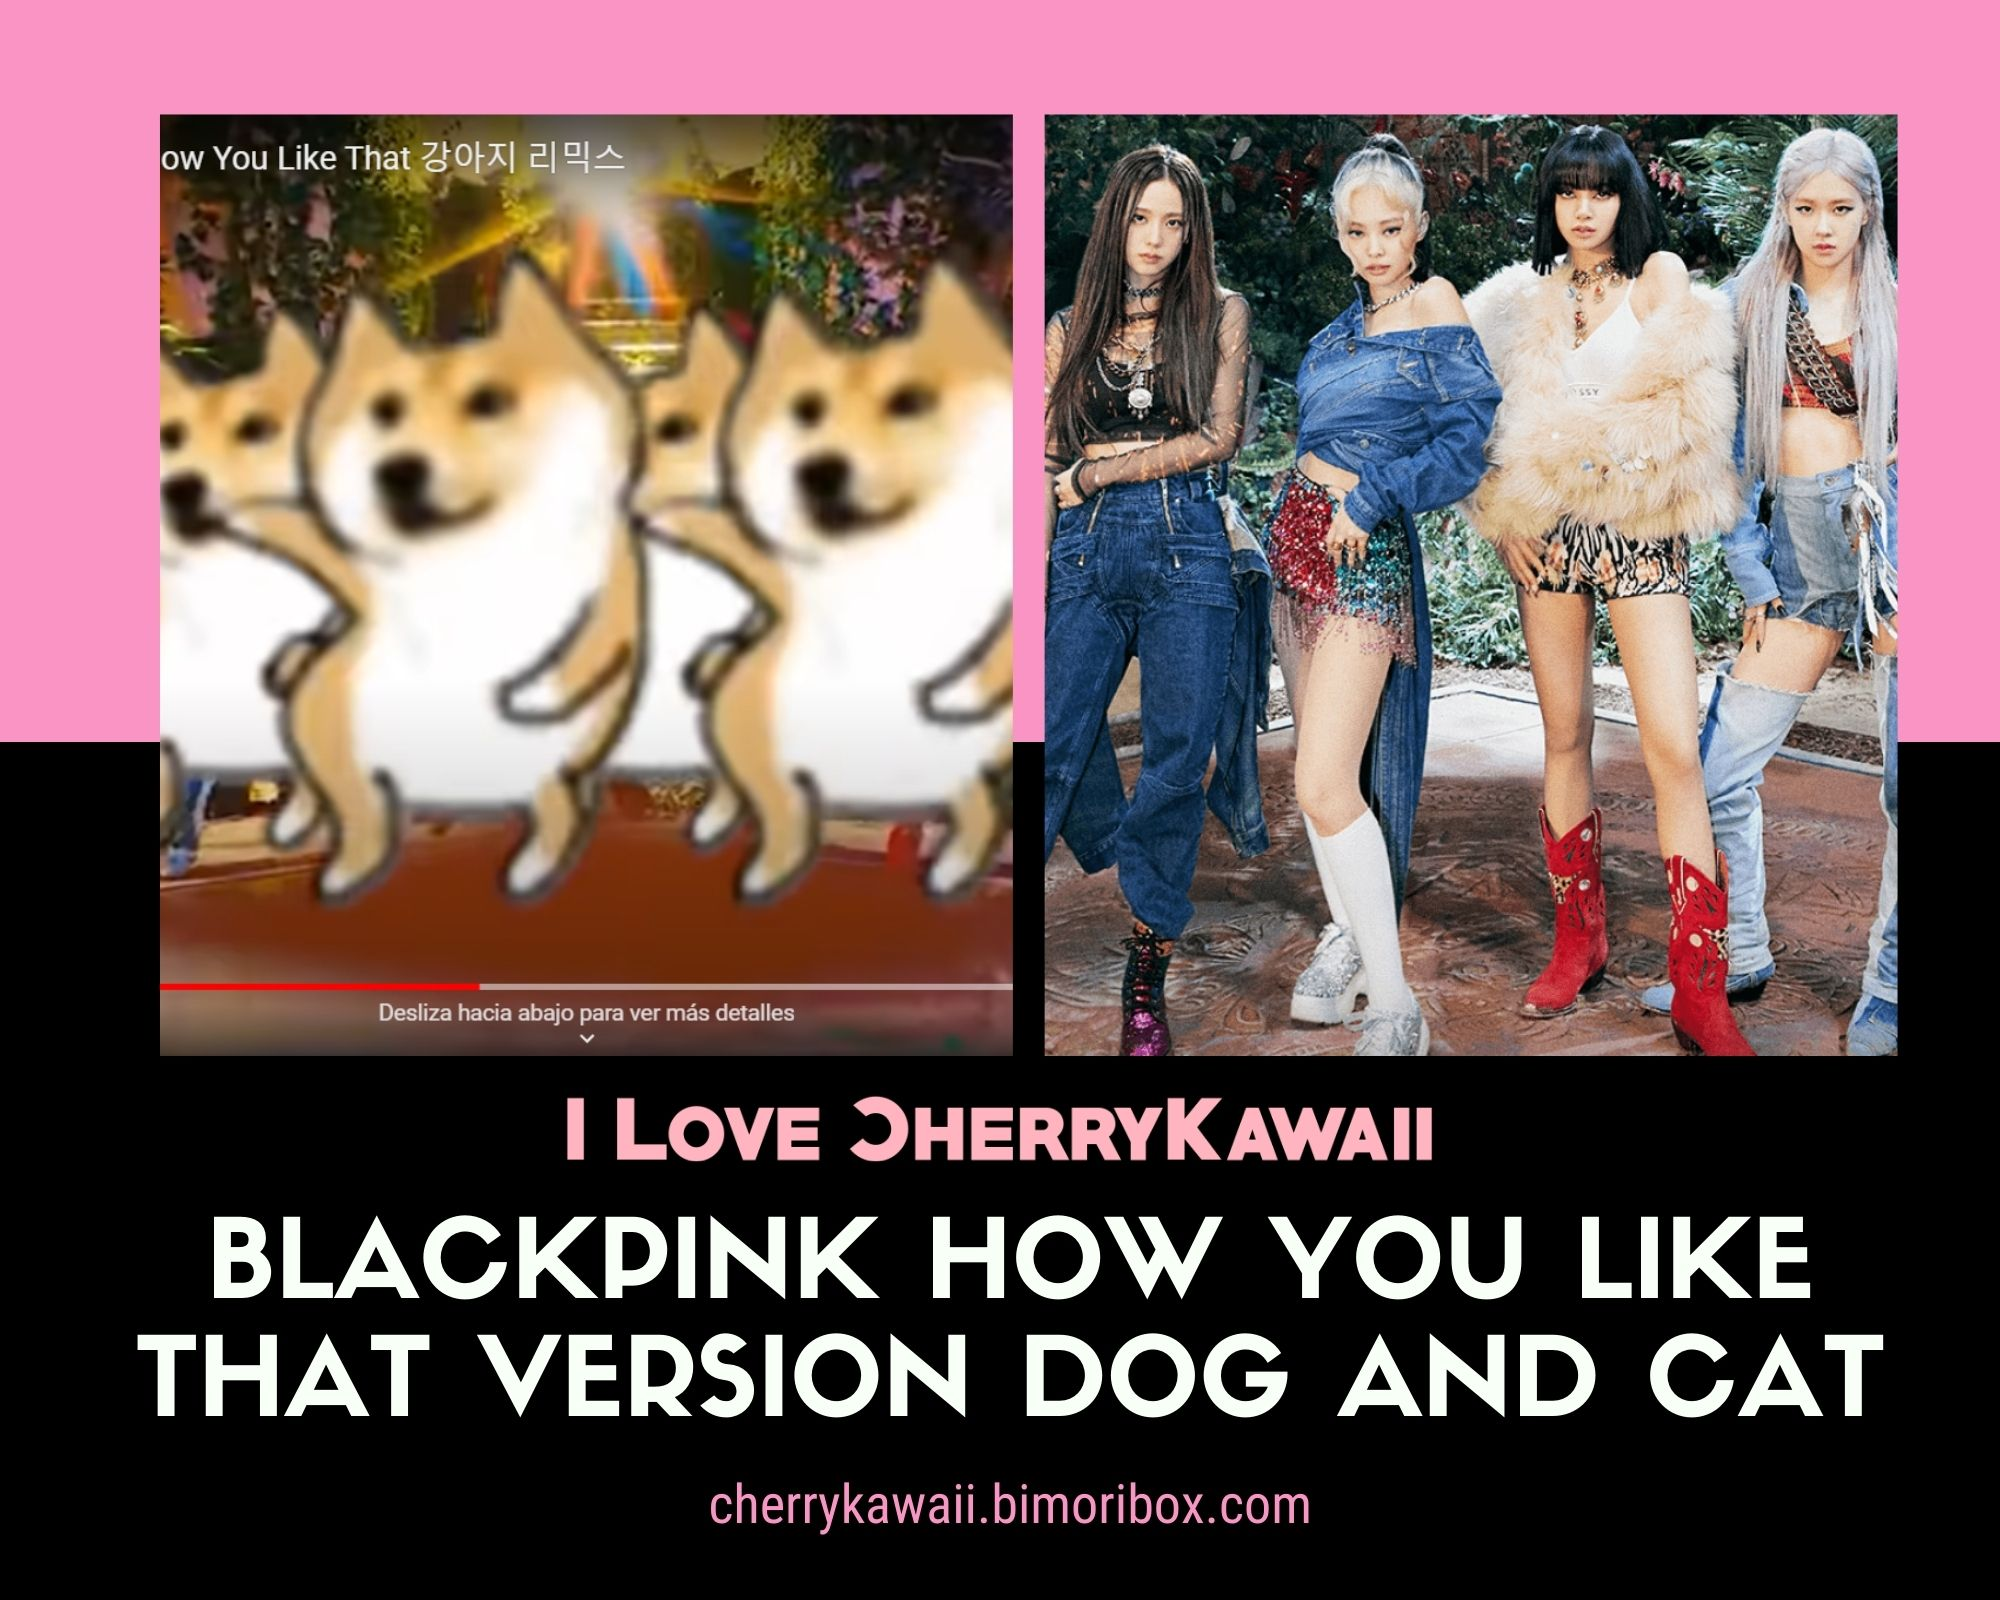 BLACKPINK HOW YOU LIKE THAT VERSION DOG AND CAT